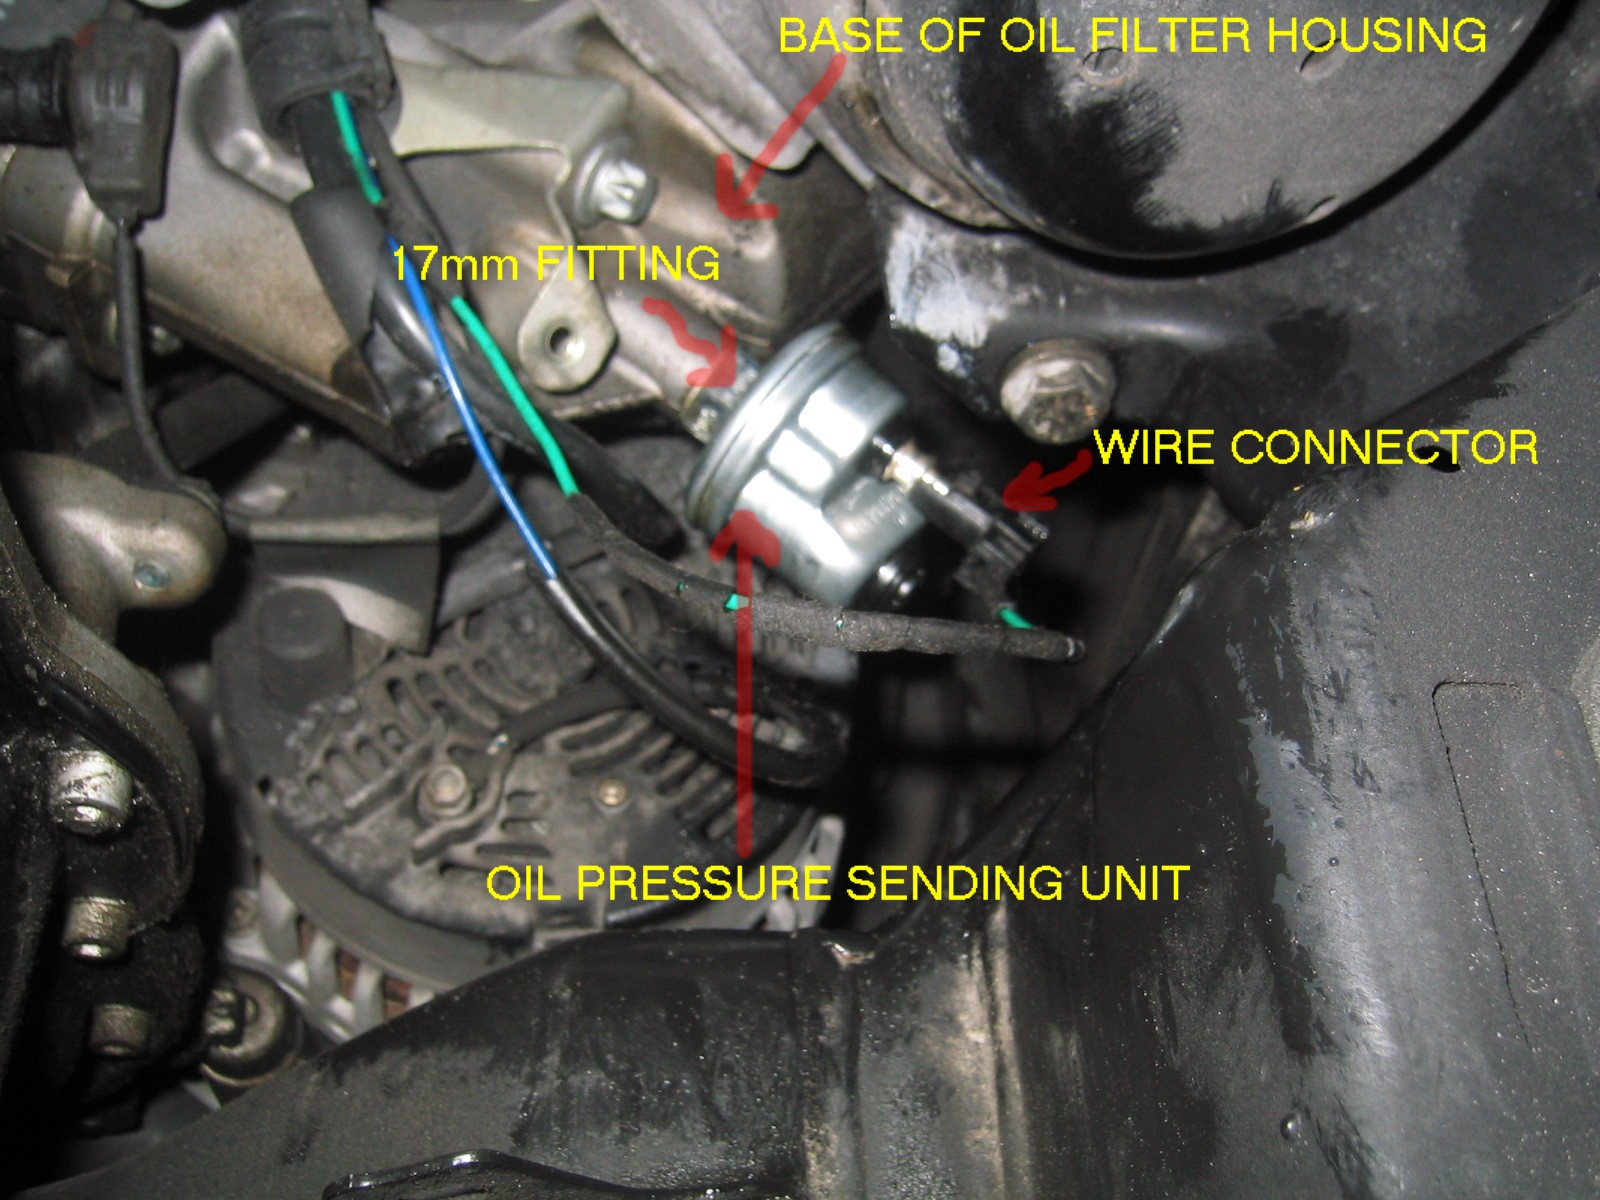 Duramax Oil Pressure Sensor Wiring Wire Center 2007 Fuel Filter Housing Photo Diy Sending Unit Mercedes Benz Forum Rh Benzworld Org 2004